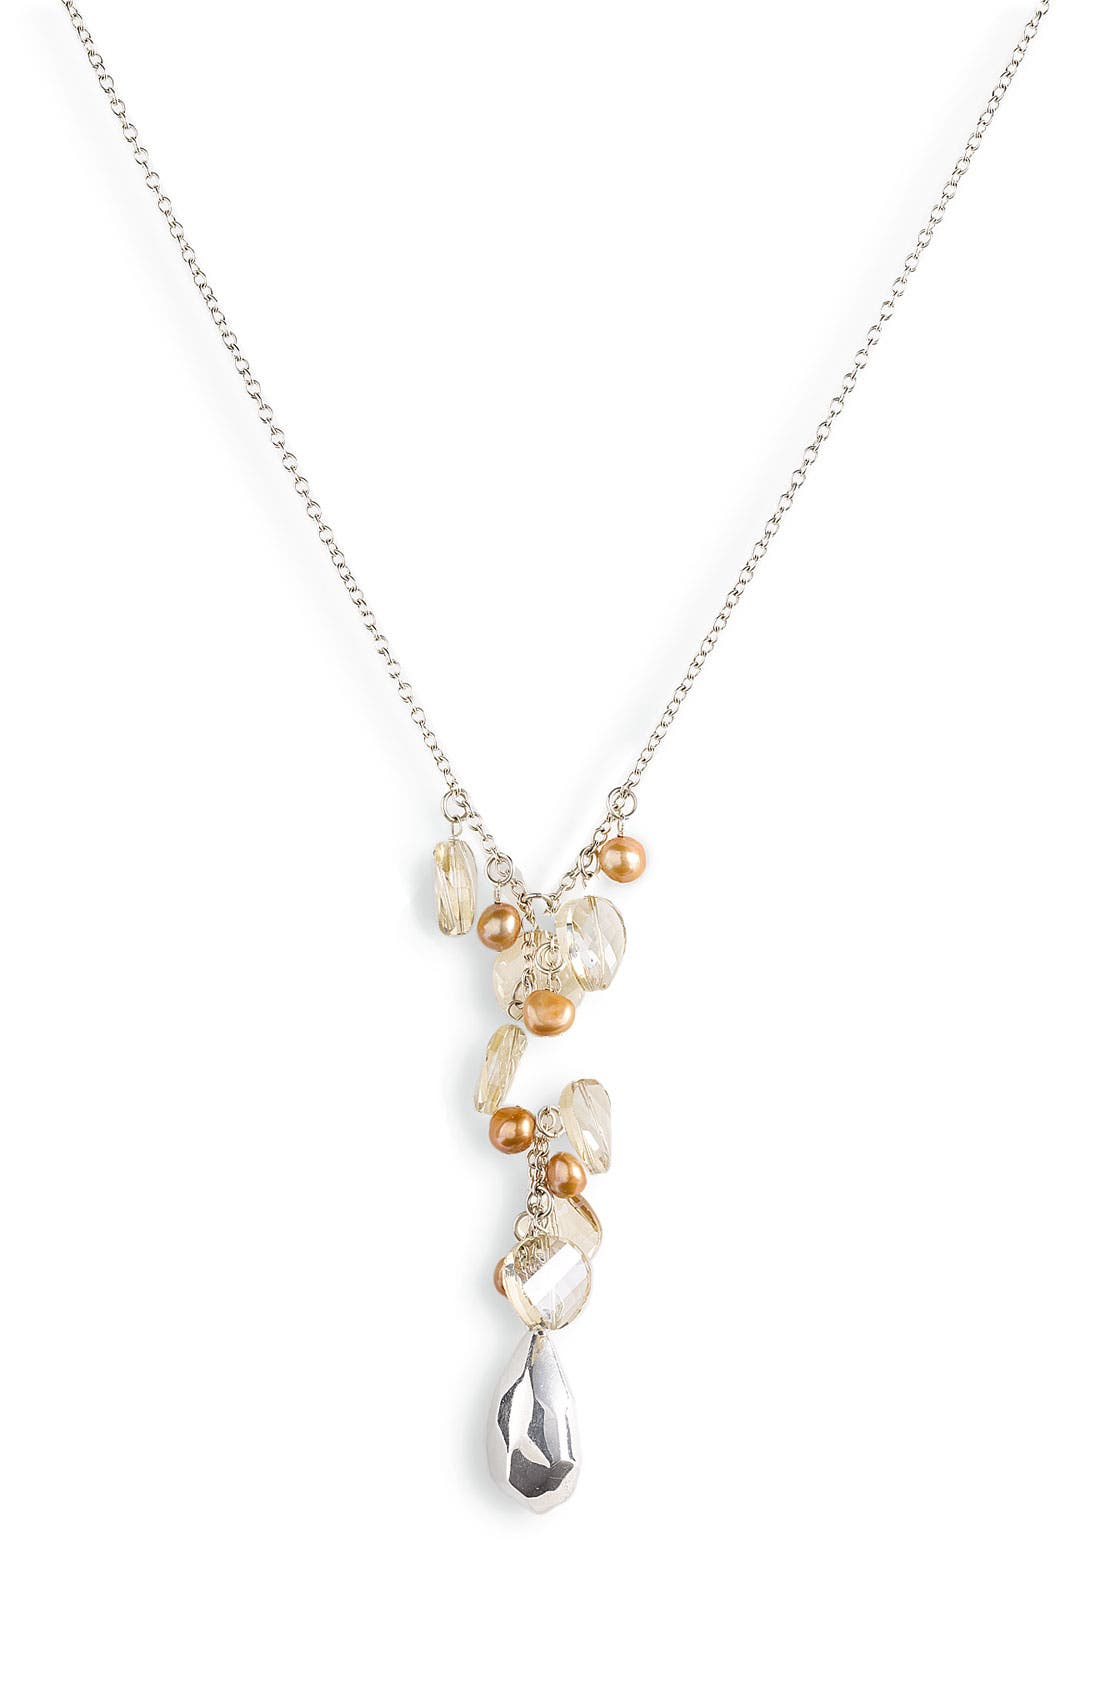 Main Image - Simon Sebbag Clustered Long Strand Necklace